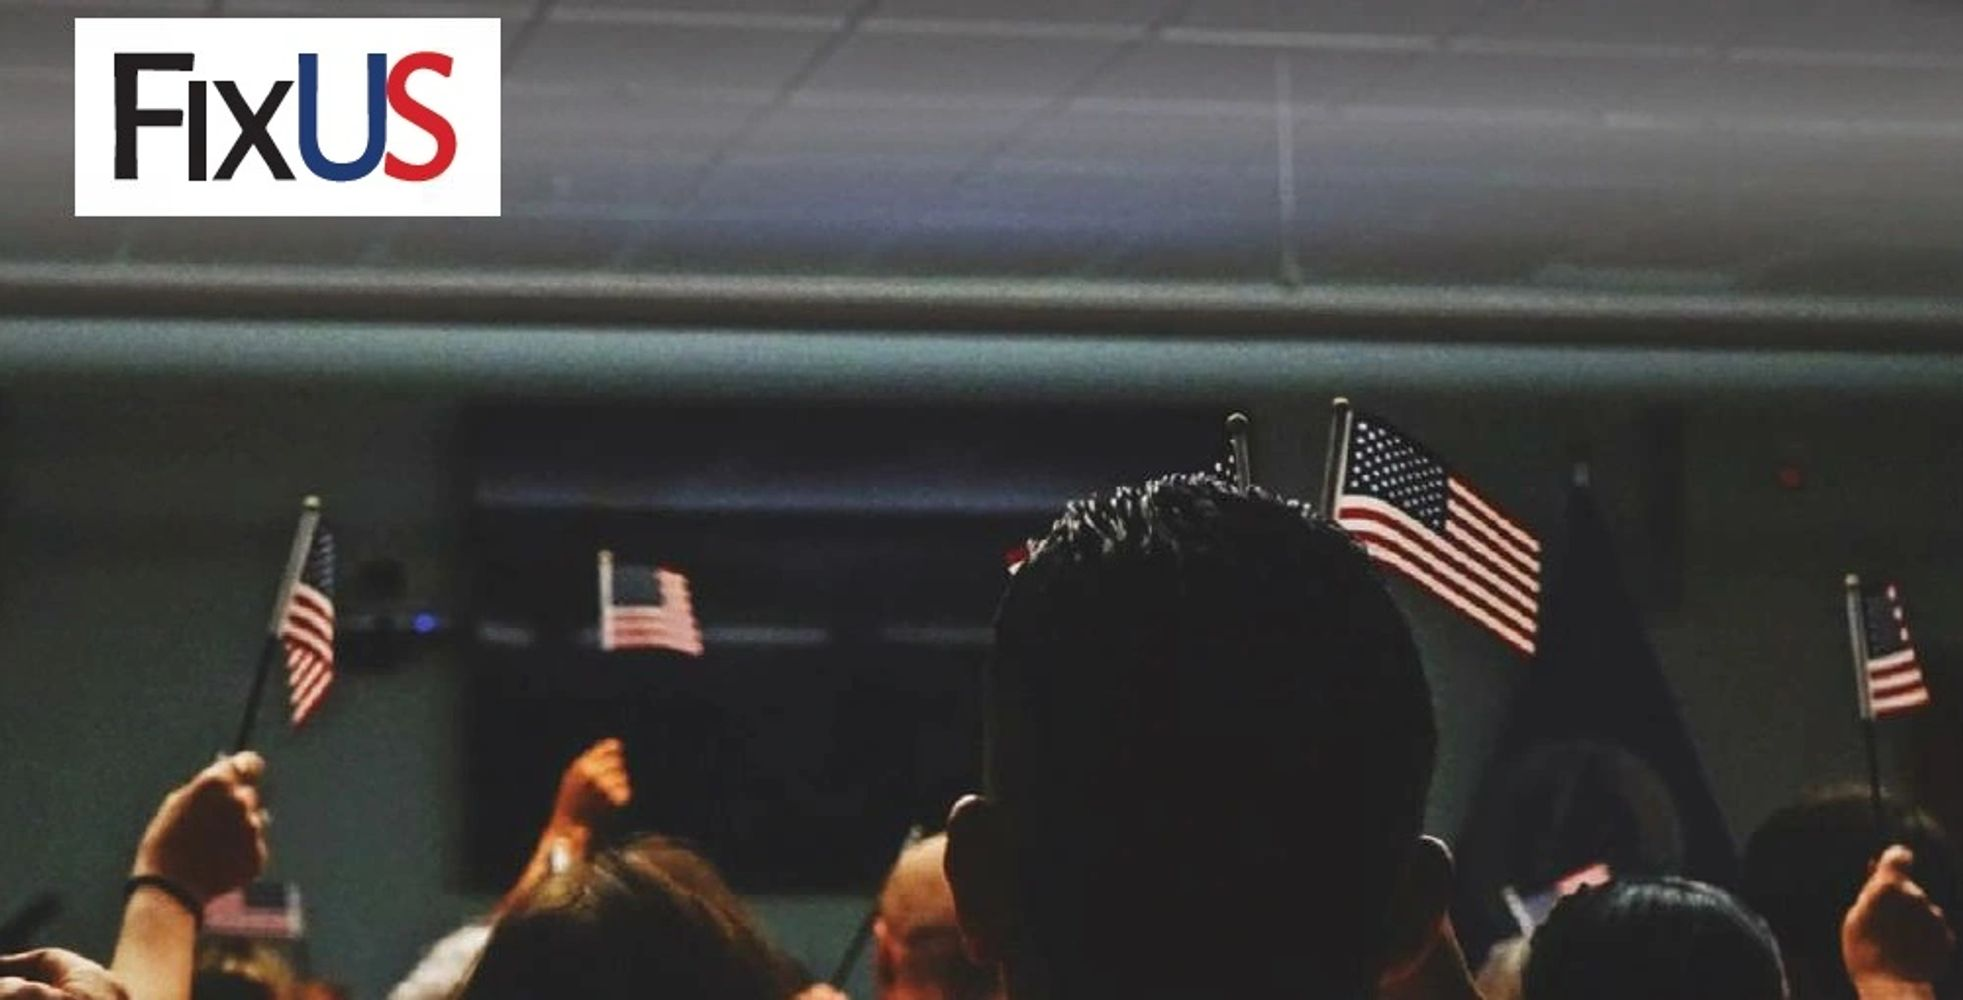 FixUS header image of people with American flags